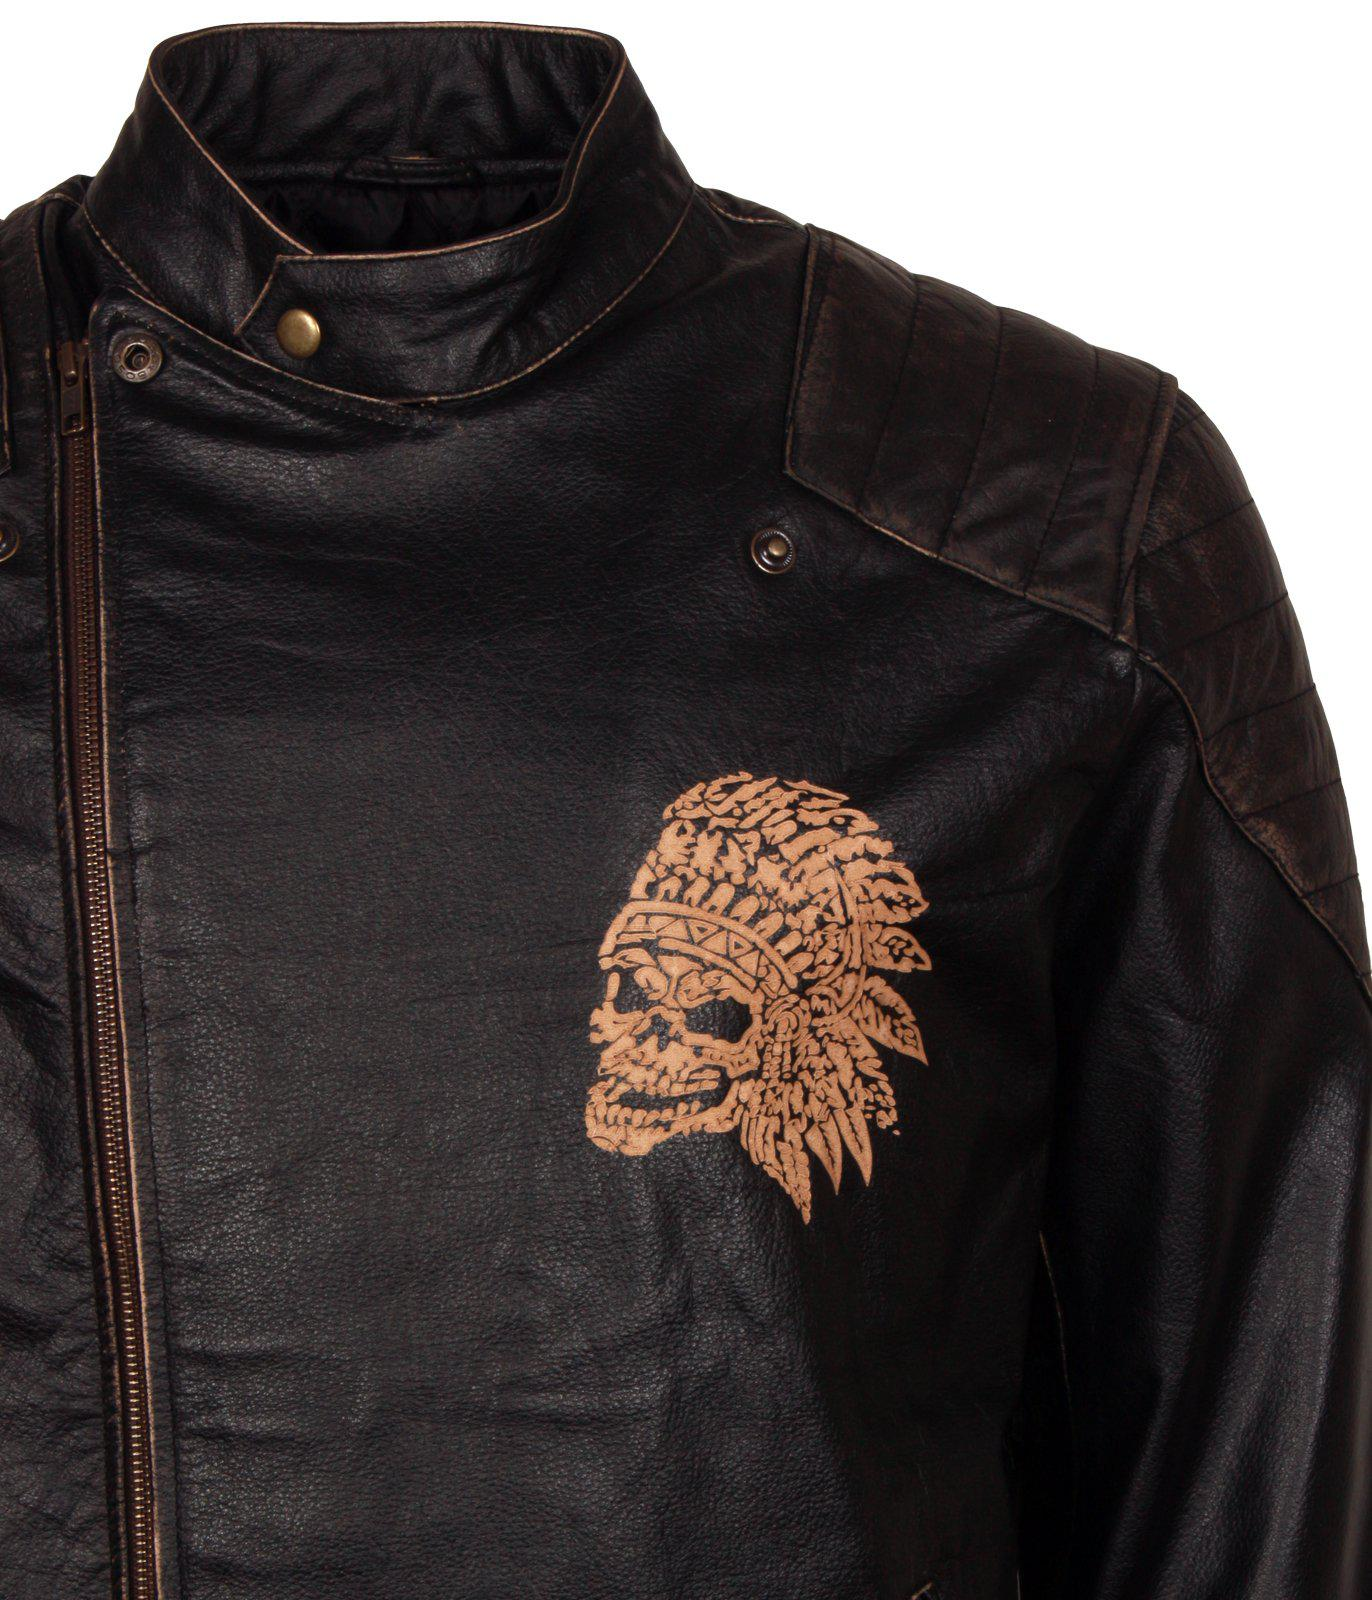 Engraved Red Indian Skull Leather Jacket